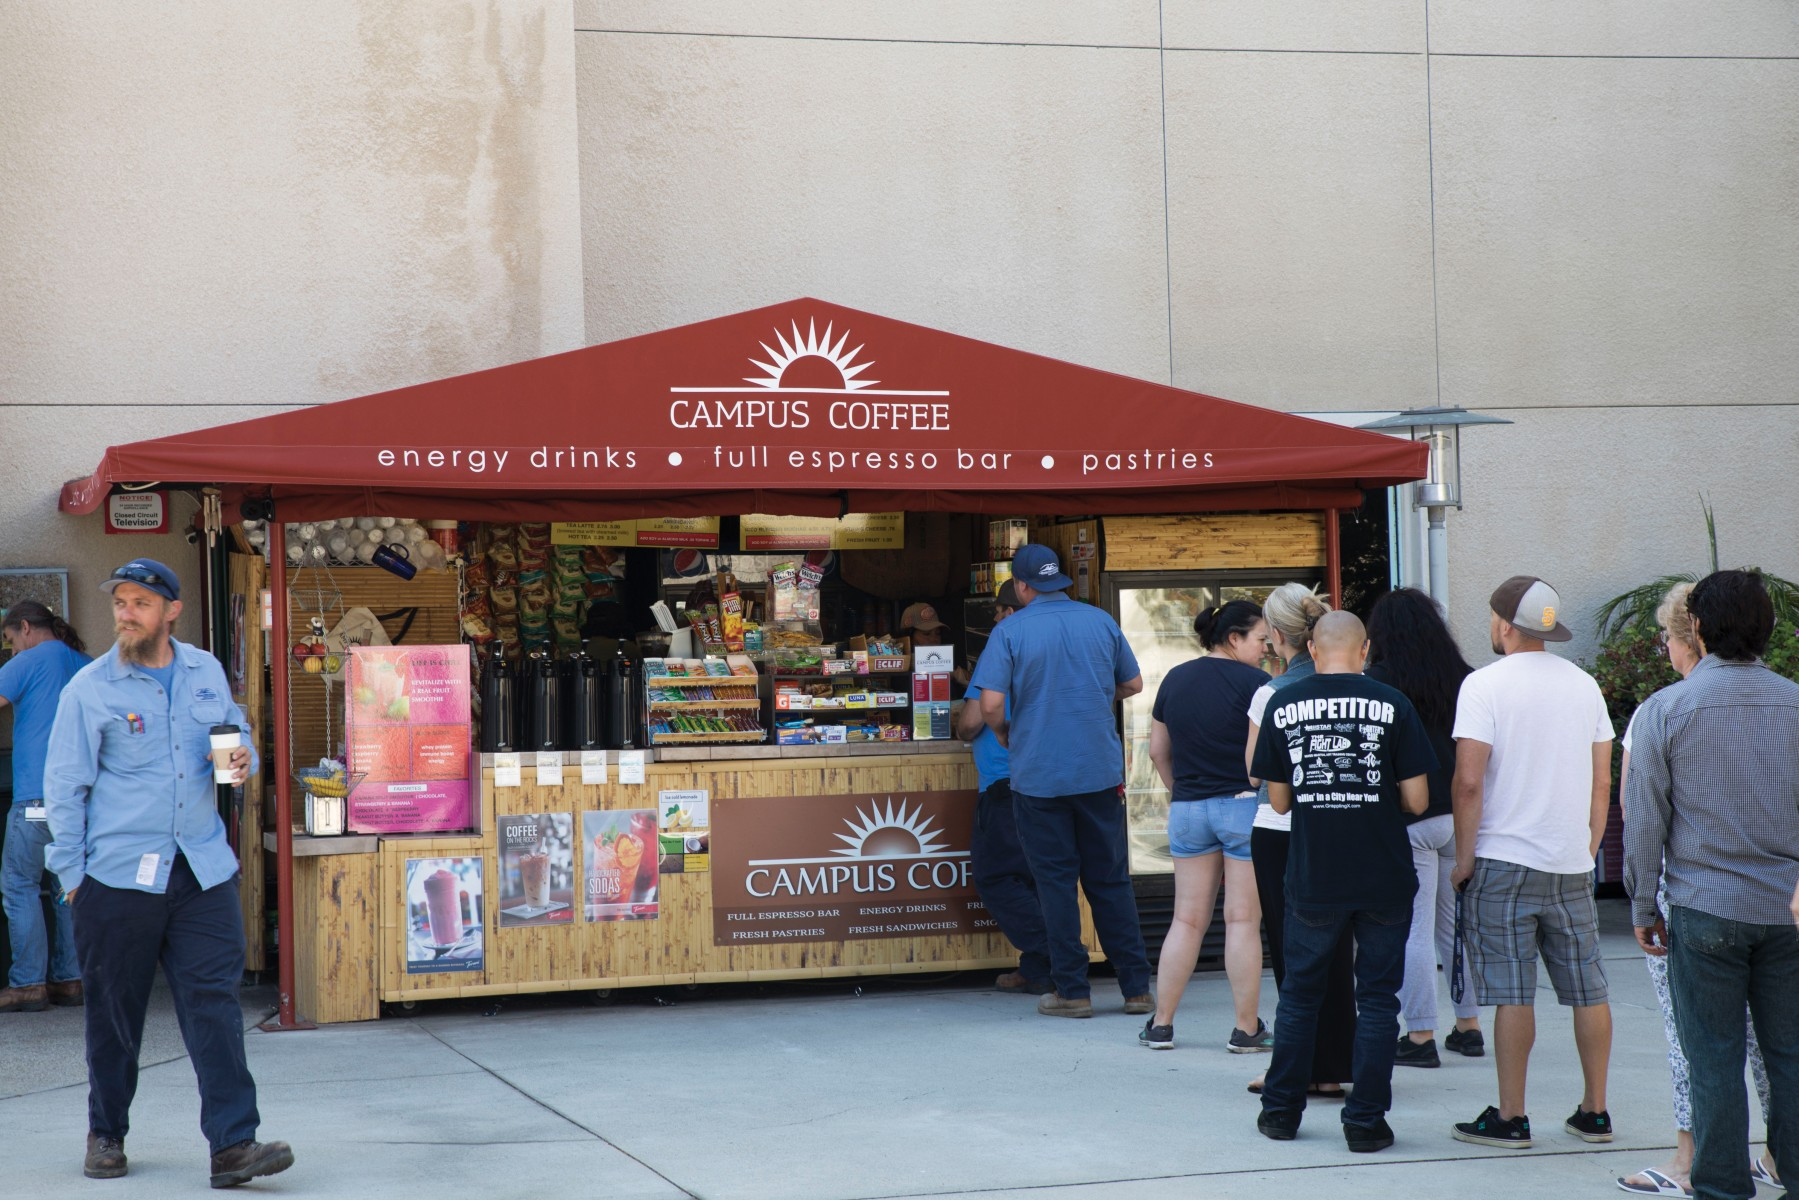 Campus Coffee takes pride in knowing its regular customers' names and usual orders. Photo by Andrew Reed